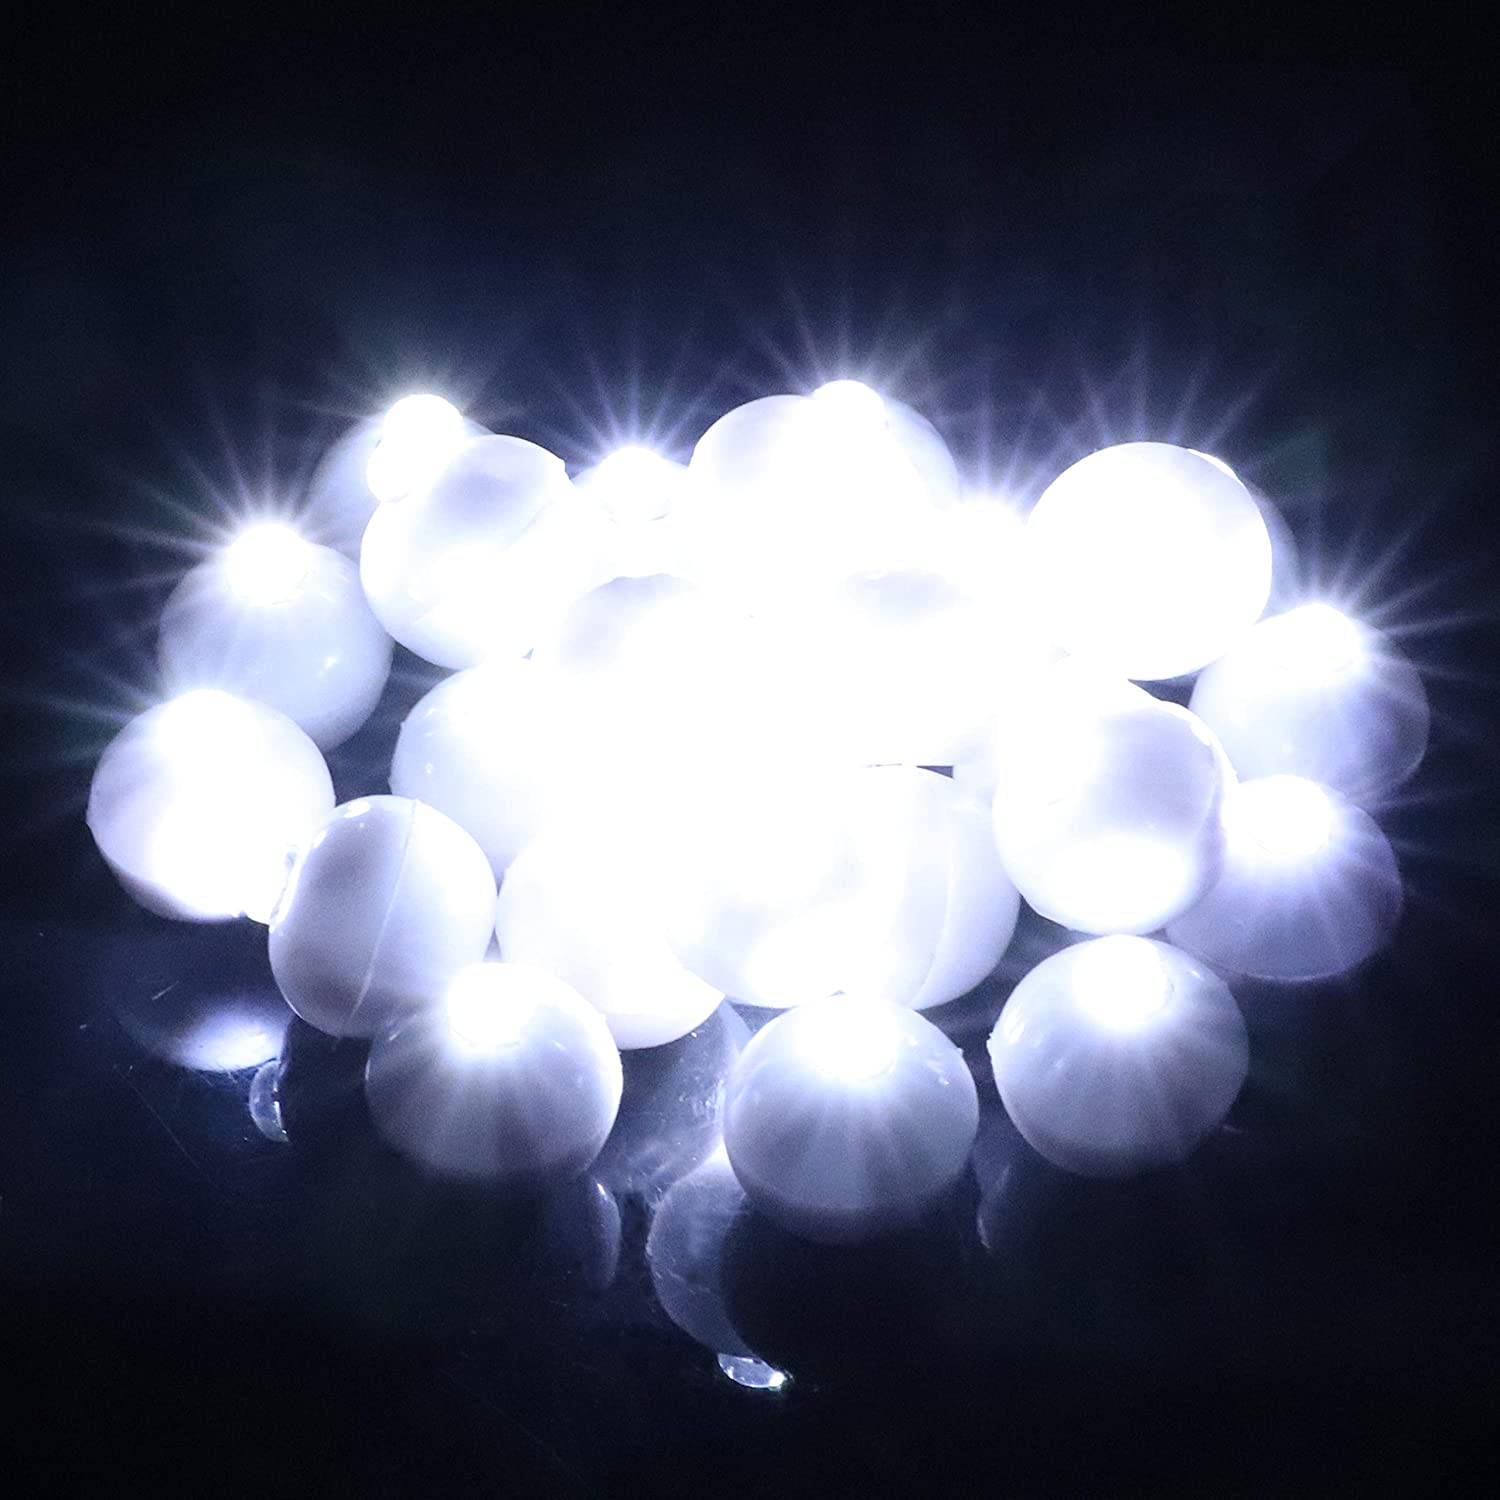 100pcs//lot Round Led Flash Ball Lamp LED Light up Balloon Lights long standby time for Paper Lantern Balloon Light Birthday Party Wedding Decoration,100 Pcs Colorful White Case Update Version